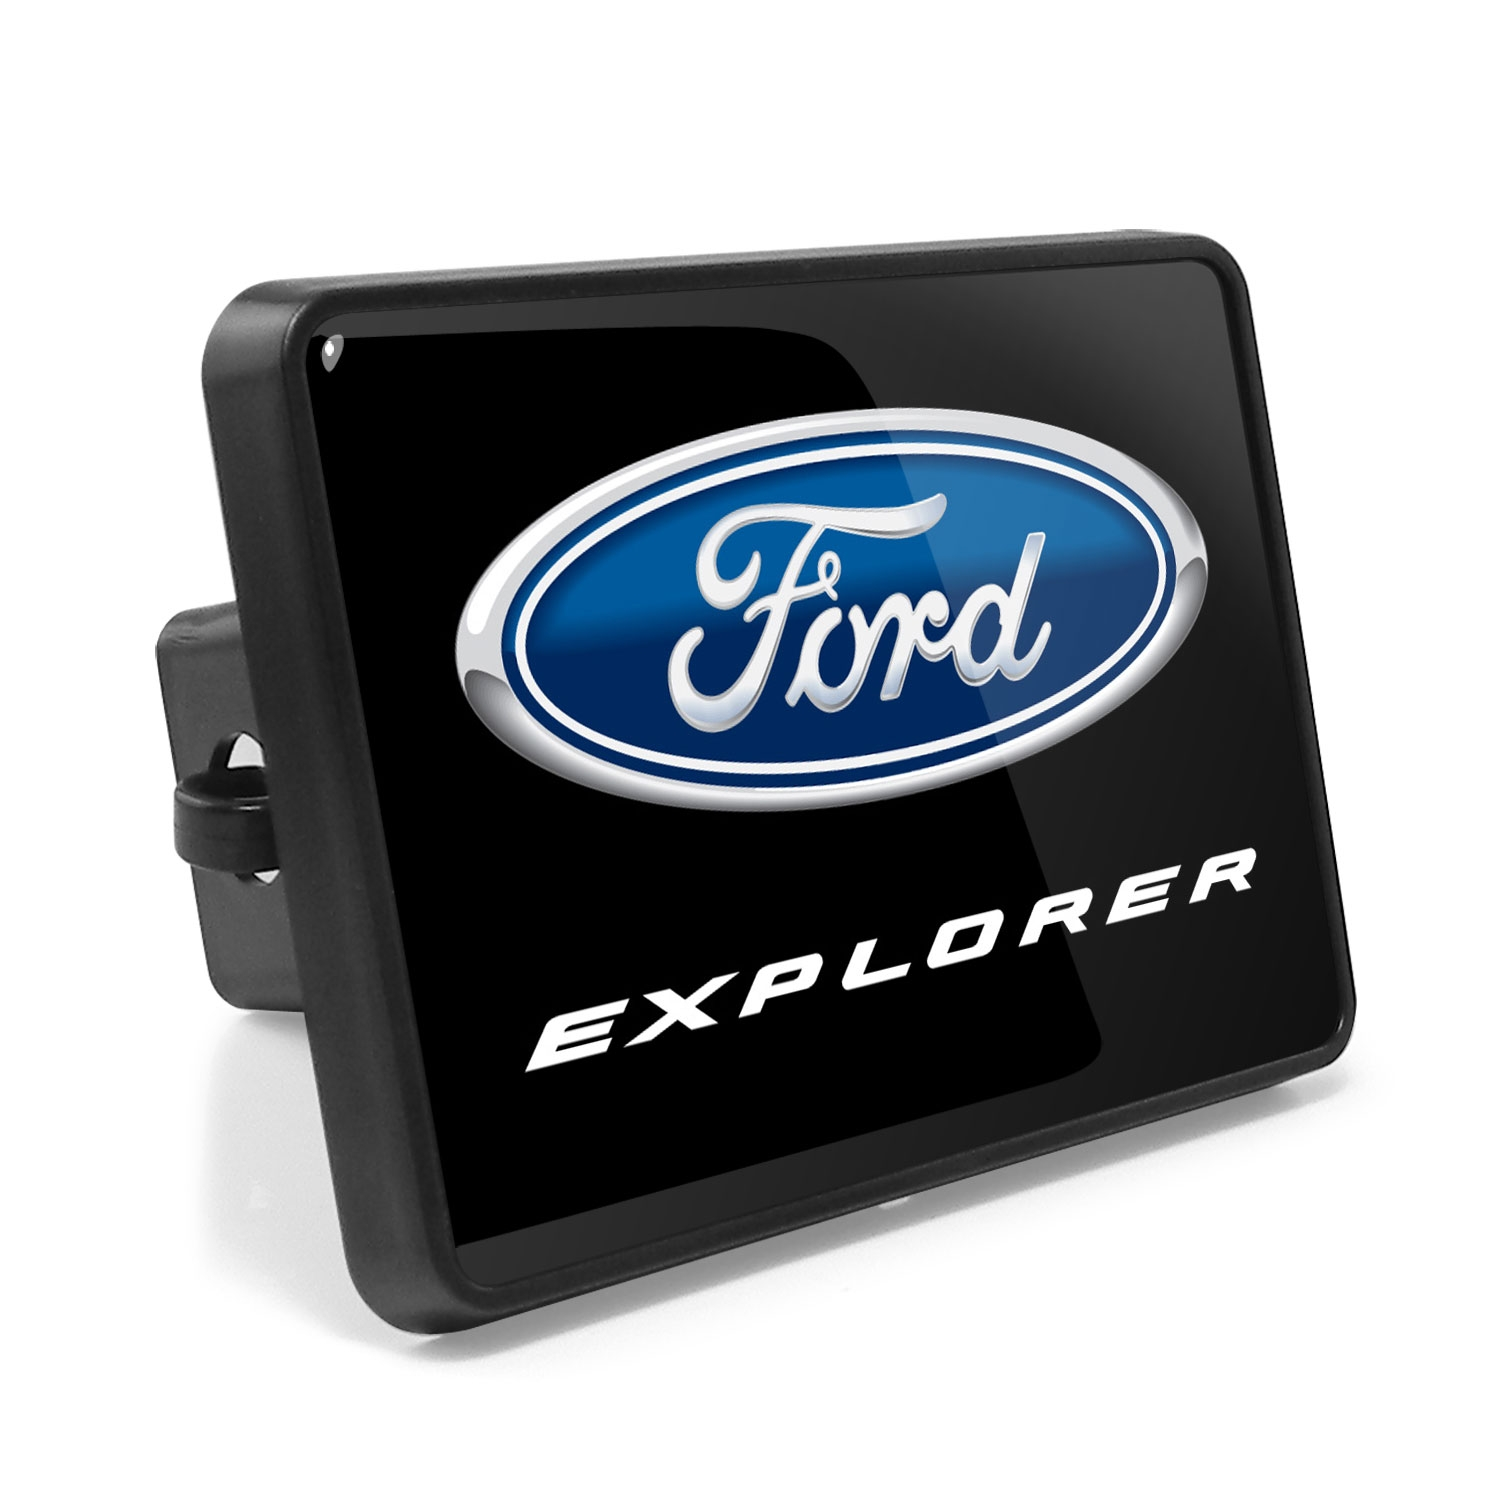 Ford Explorer UV Graphic Metal Plate on ABS Plastic 2 inch Tow Hitch Cover